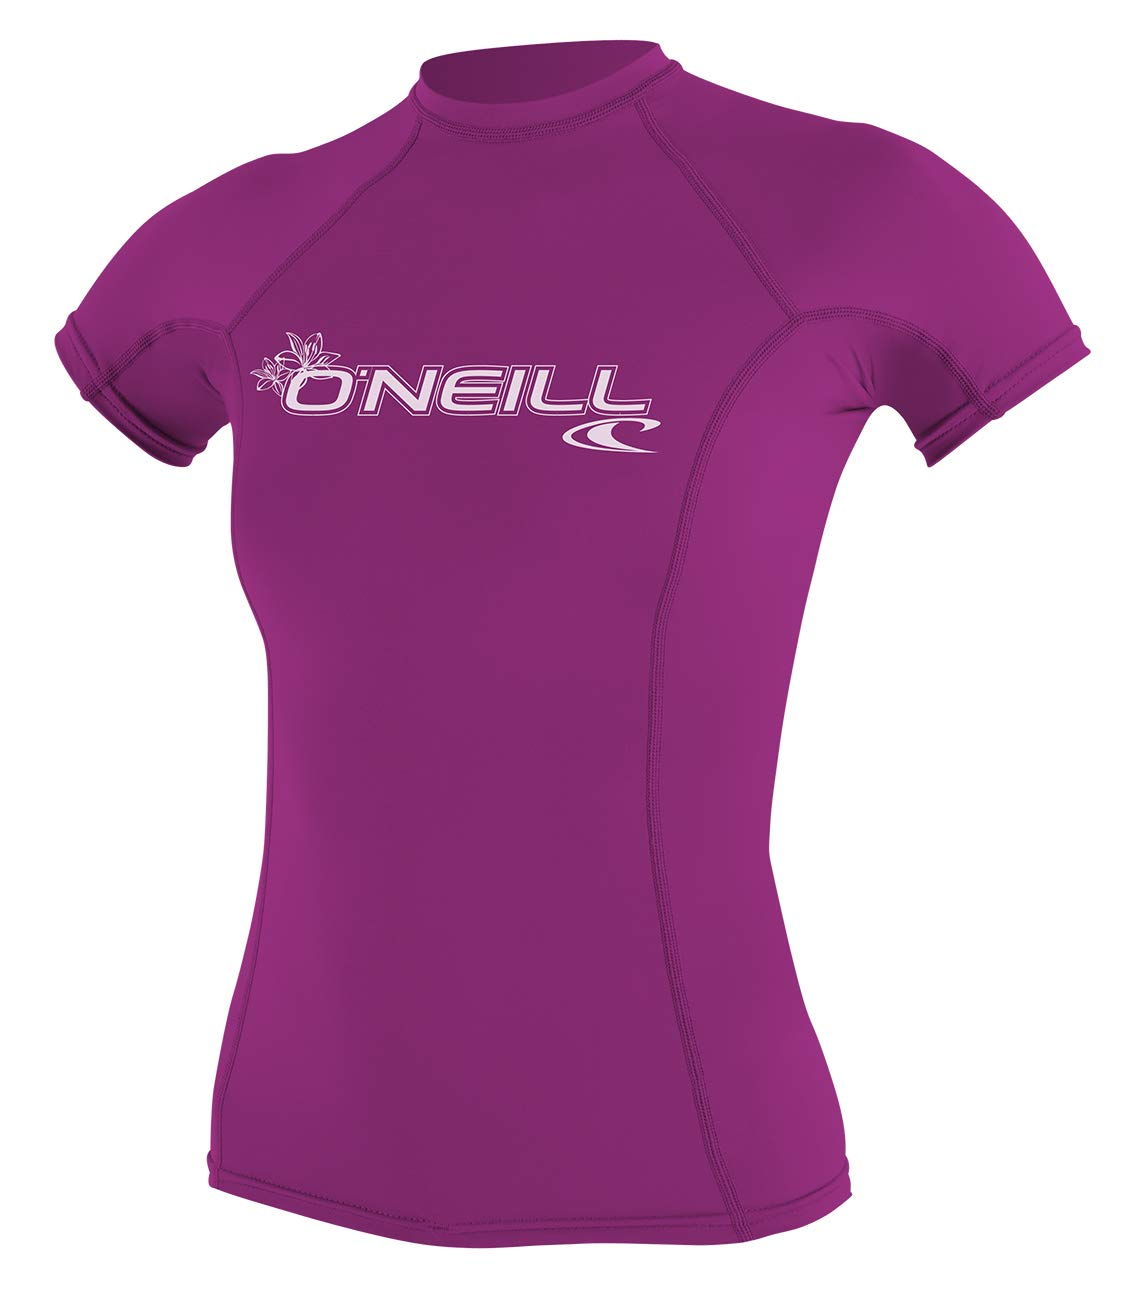 O'Neill Women's Basic 50+ Skins Short Sleeve Rash Guard, Fox Pink, X-Small by O'Neill Wetsuits